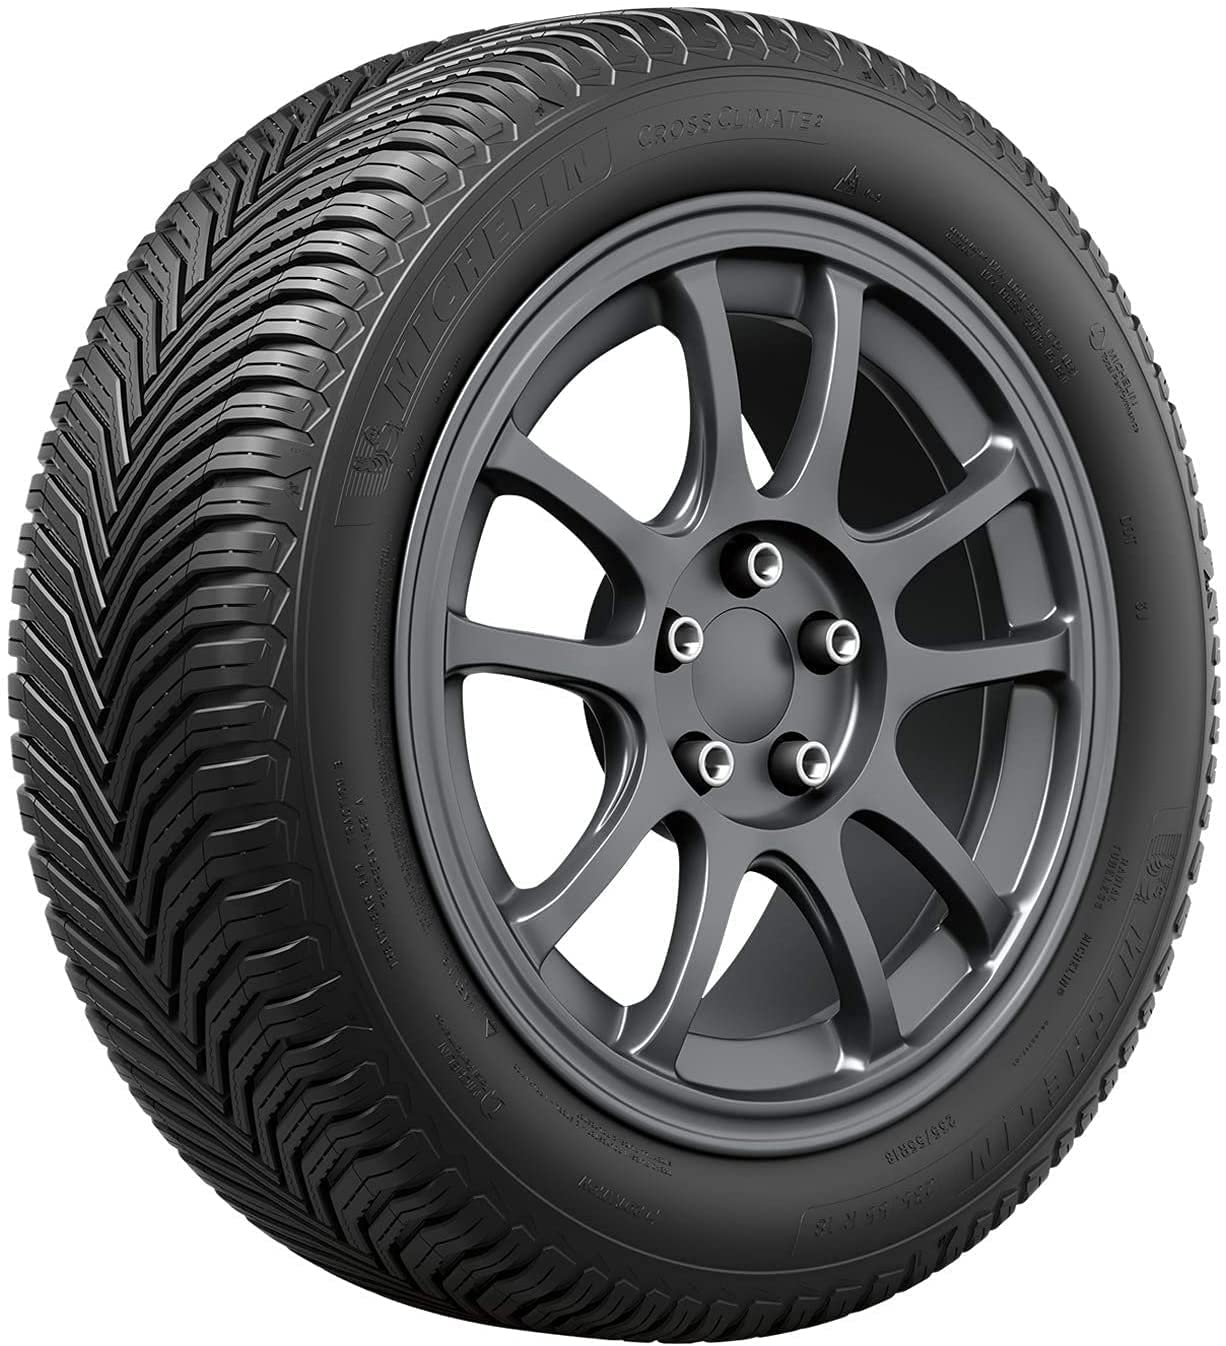 Michelin CrossClimate2 Super sale All-Season Outlet ☆ Free Shipping Radial Car Tire Grand Tour for